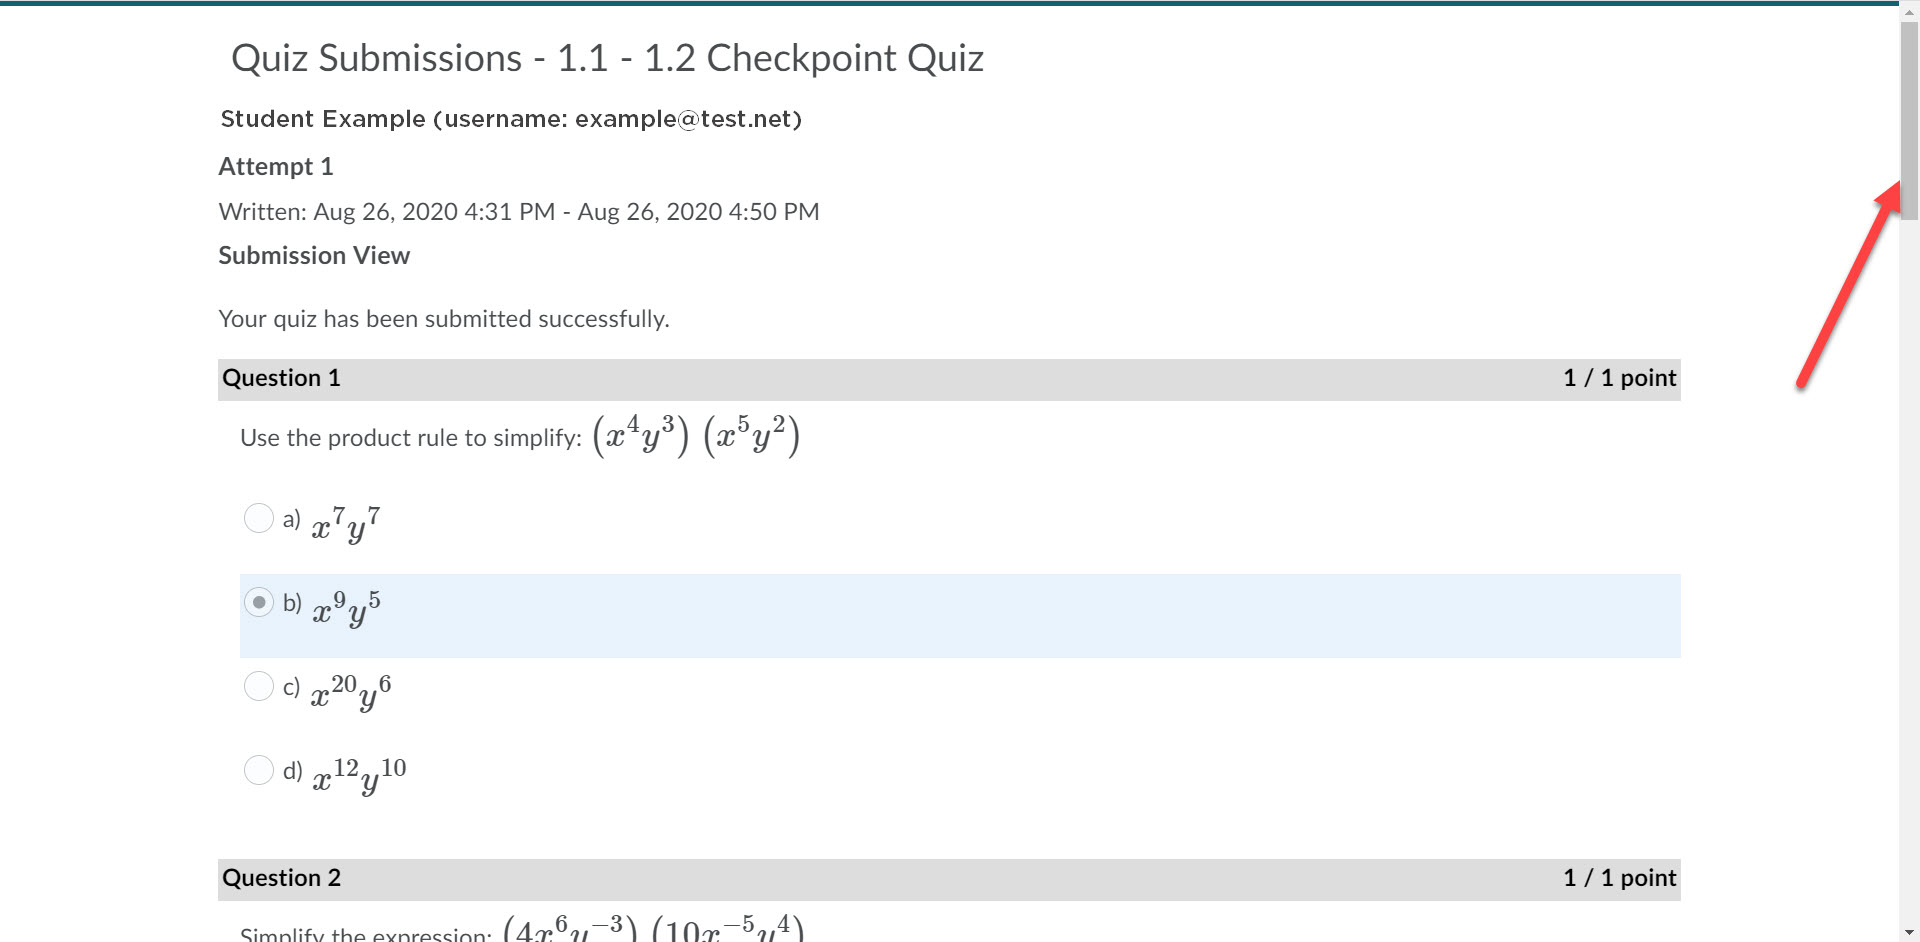 Quiz submission example is shown. The submission details are shown and the questions and responses are also displayed. An arrow points to the scroll bar on the right for the user to view additional questions submitted.